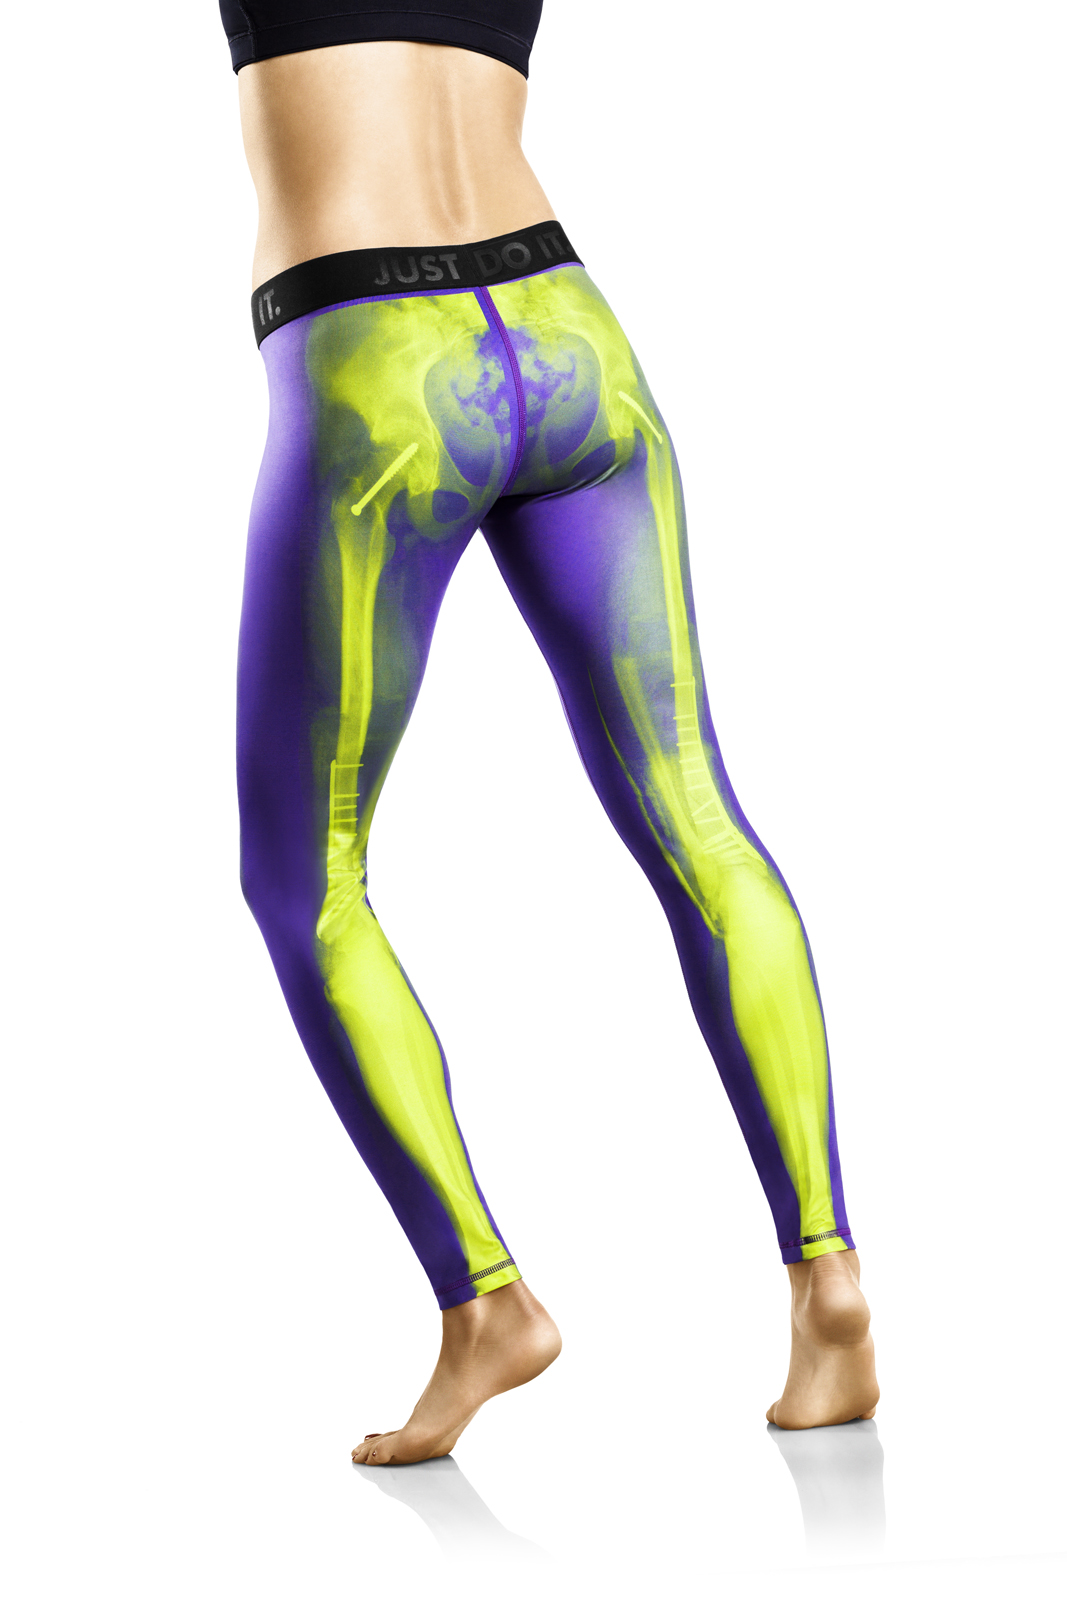 Nike_Exclusive_Print_Tight_2_original.jpg